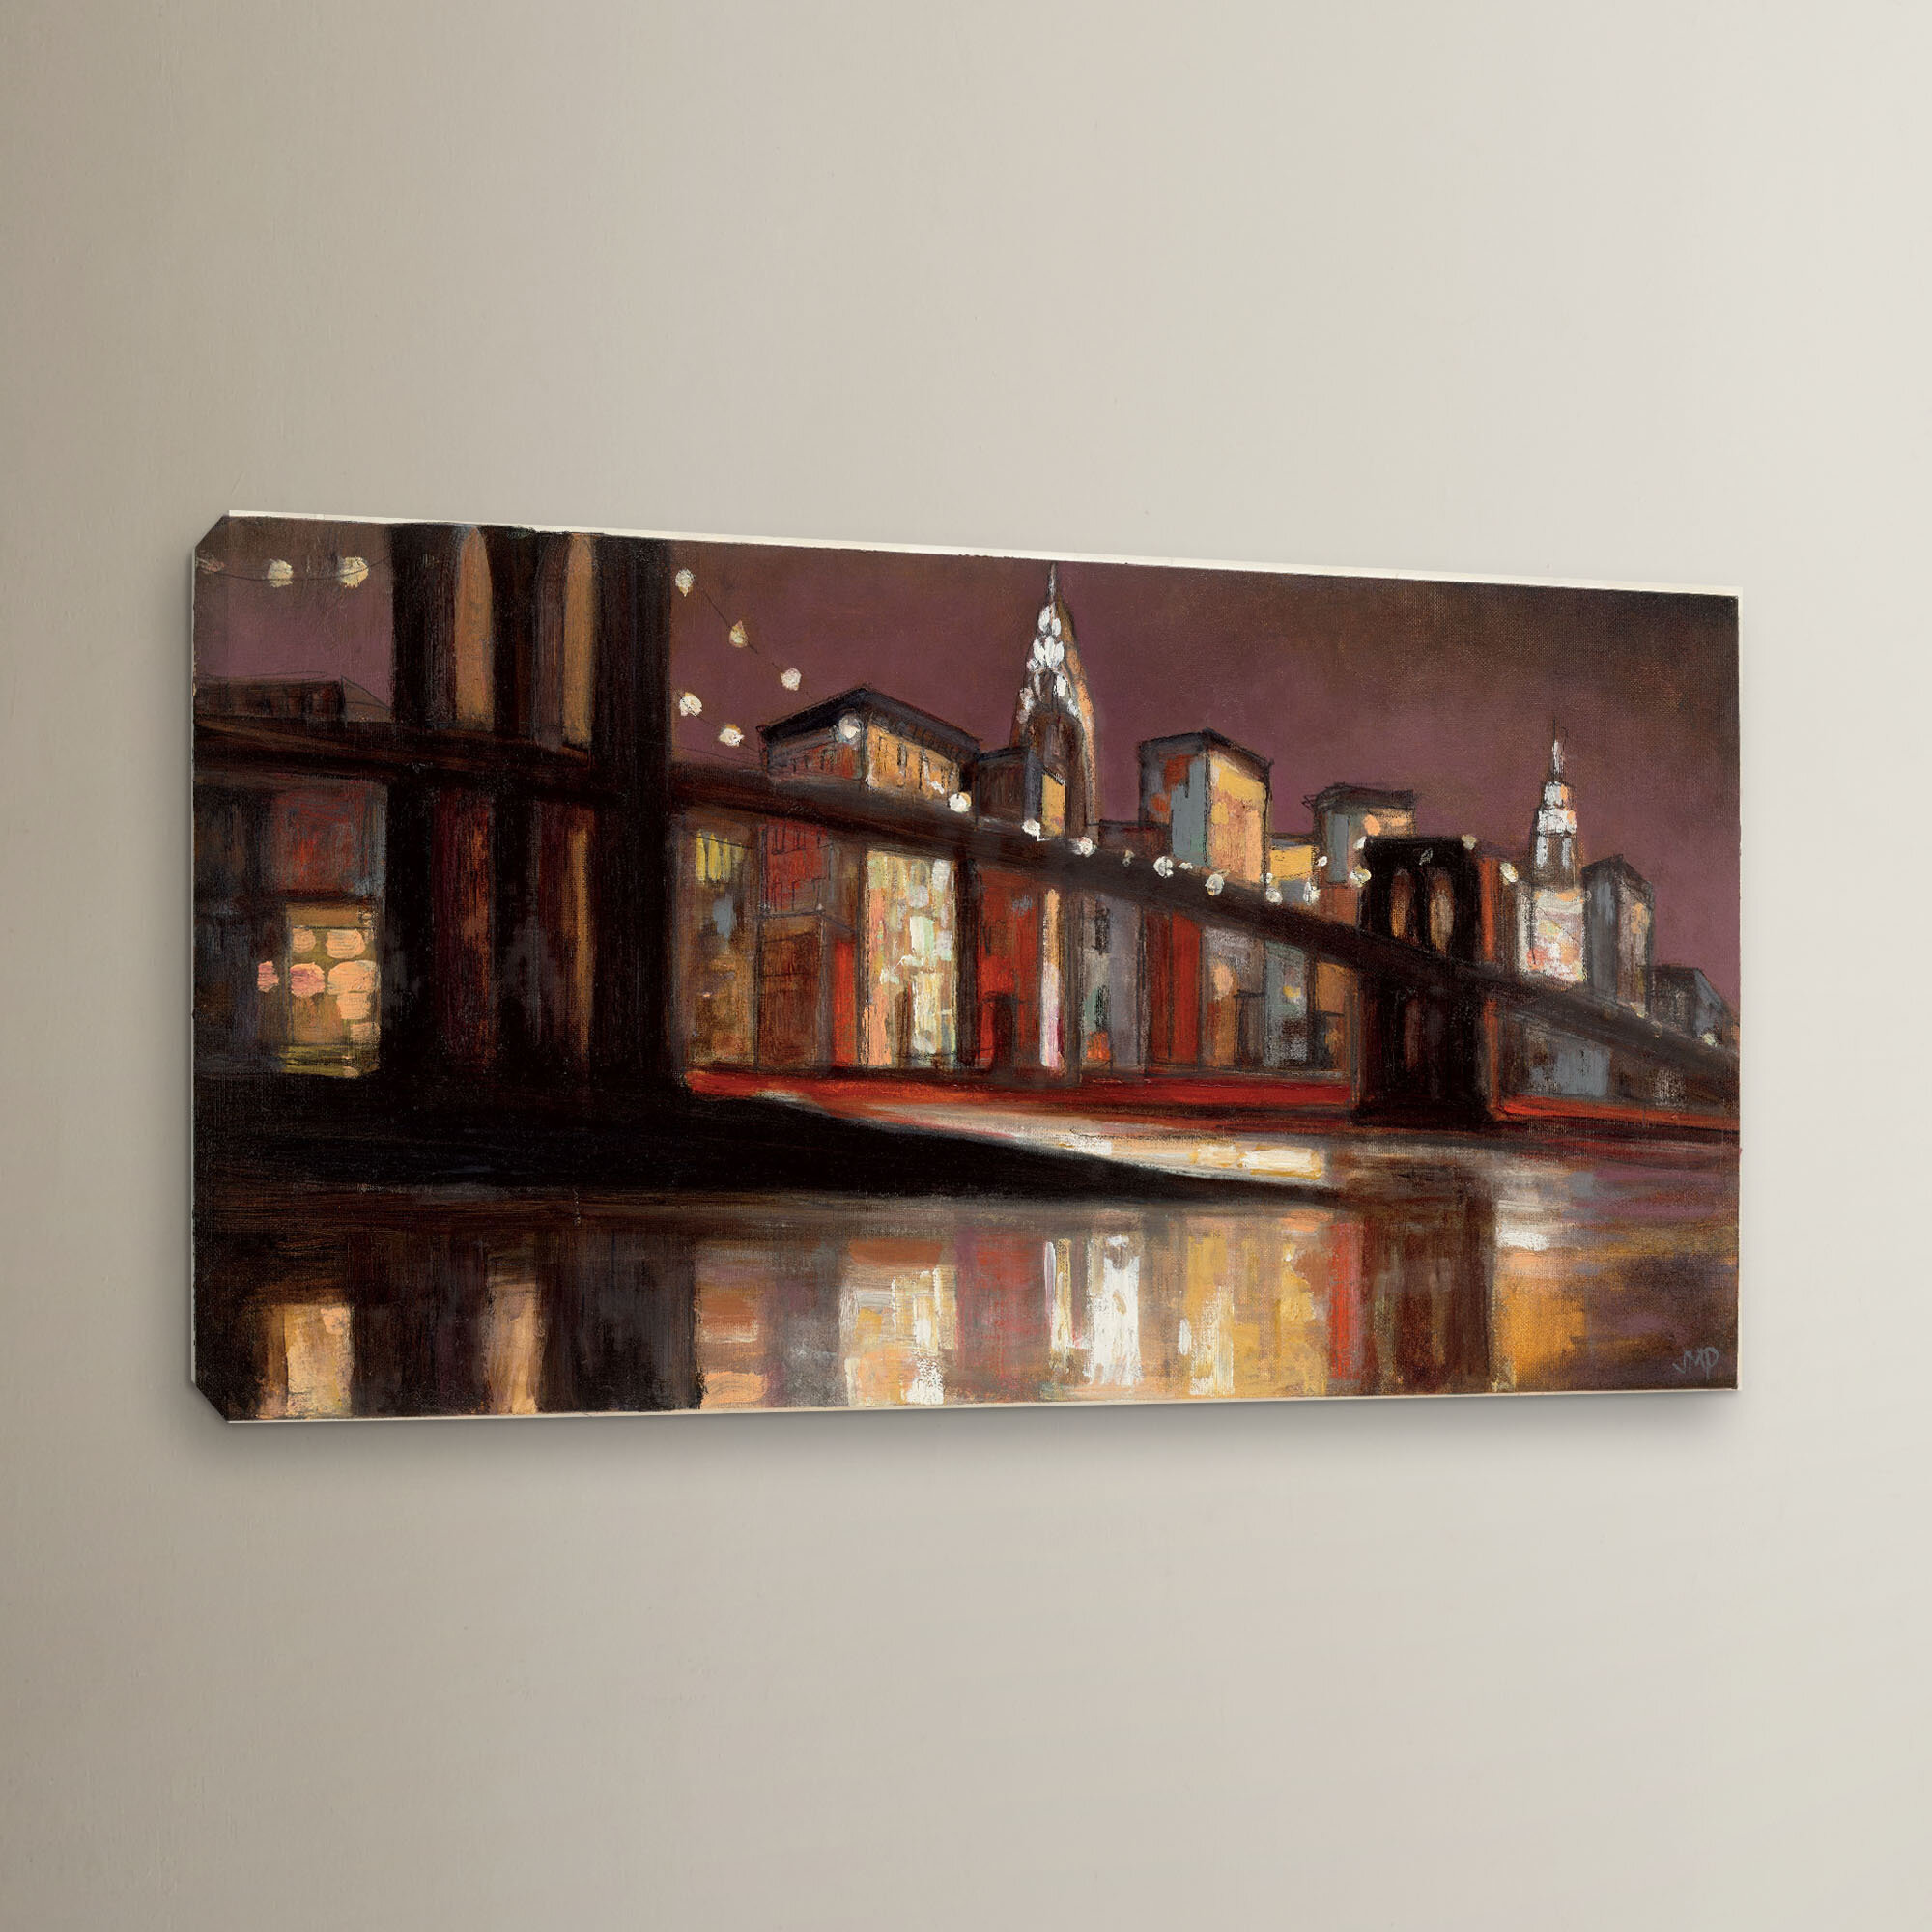 Ebern Designs Nyc Nighttime Painting Print On Wrapped Canvas Wayfair